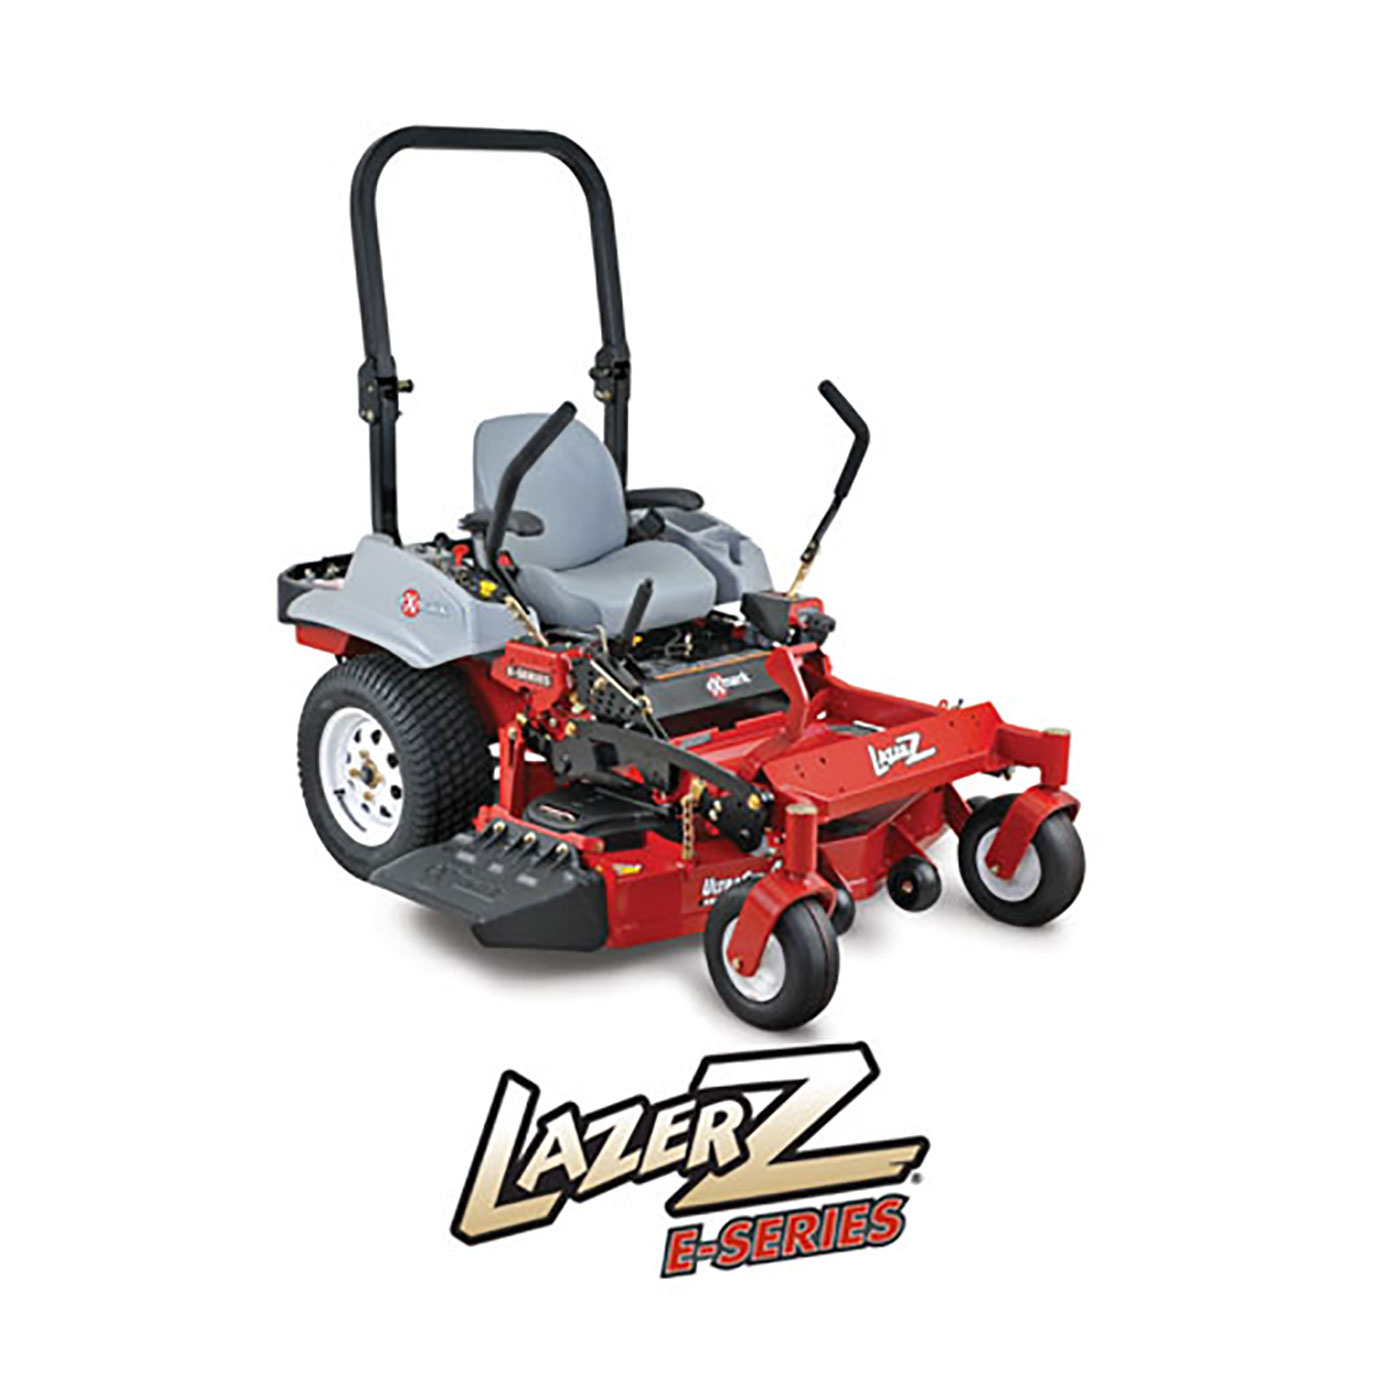 Exmark Lazer Z 48 inch E-Series Zero-Turn Mower